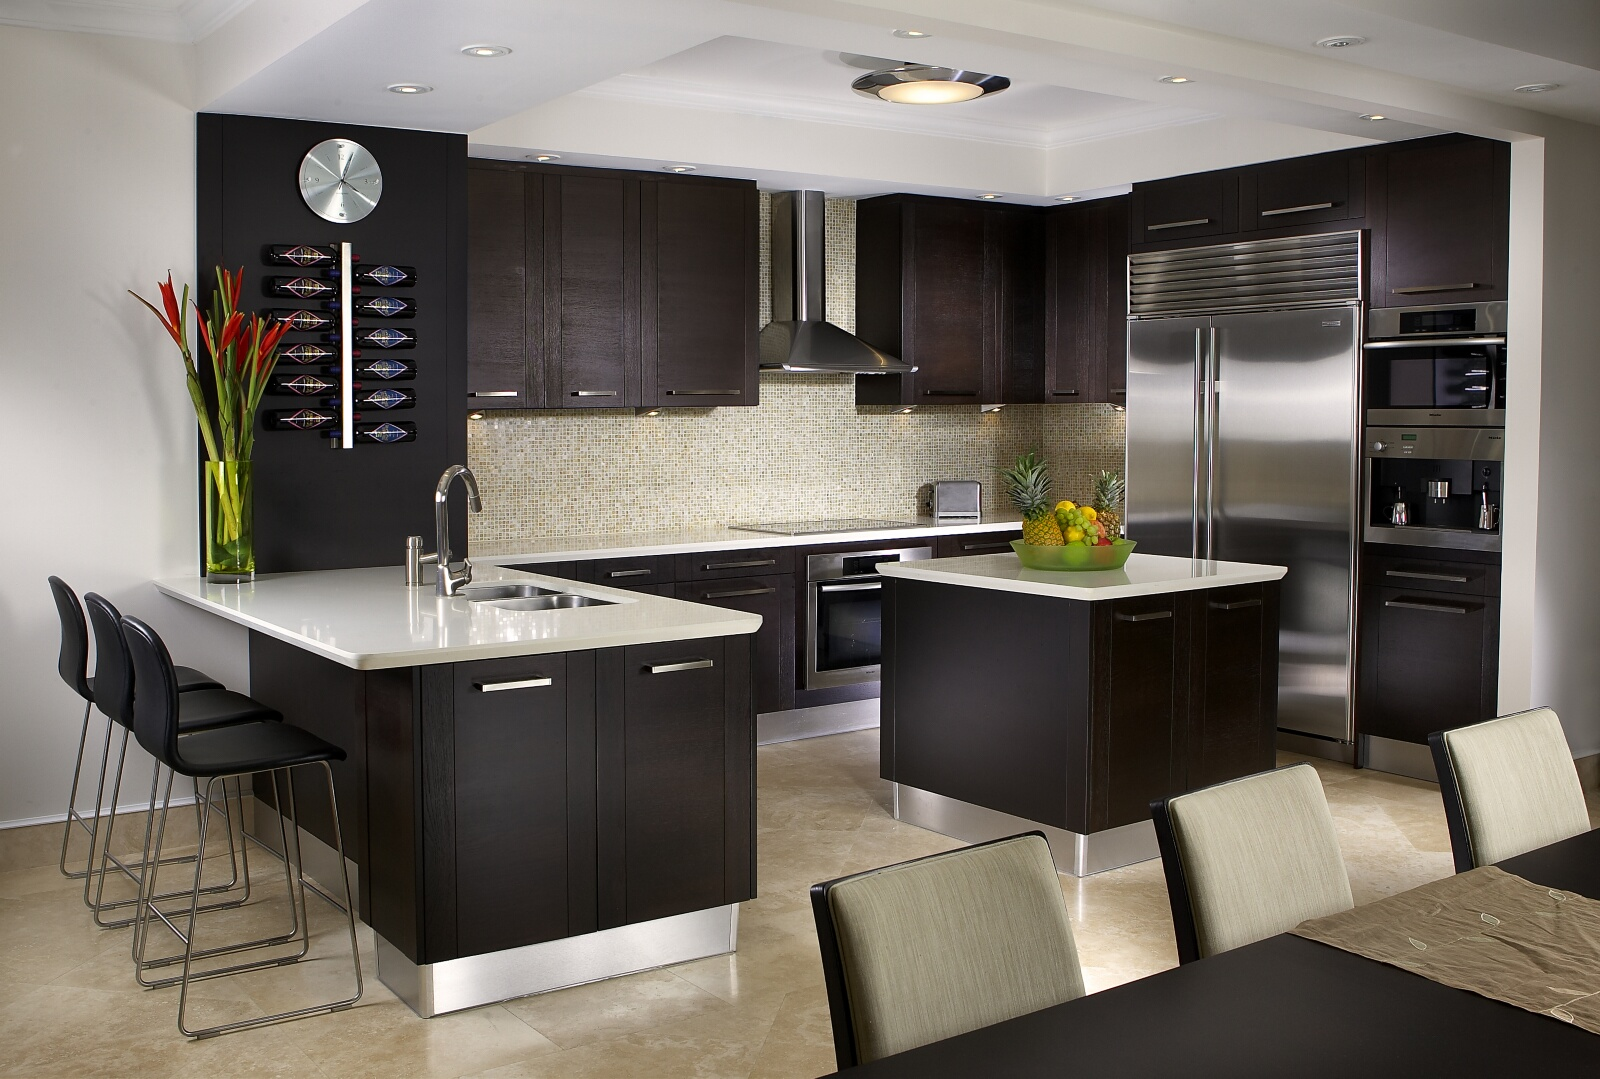 Kitchen interior design services miami florida for Kitchen interior designs